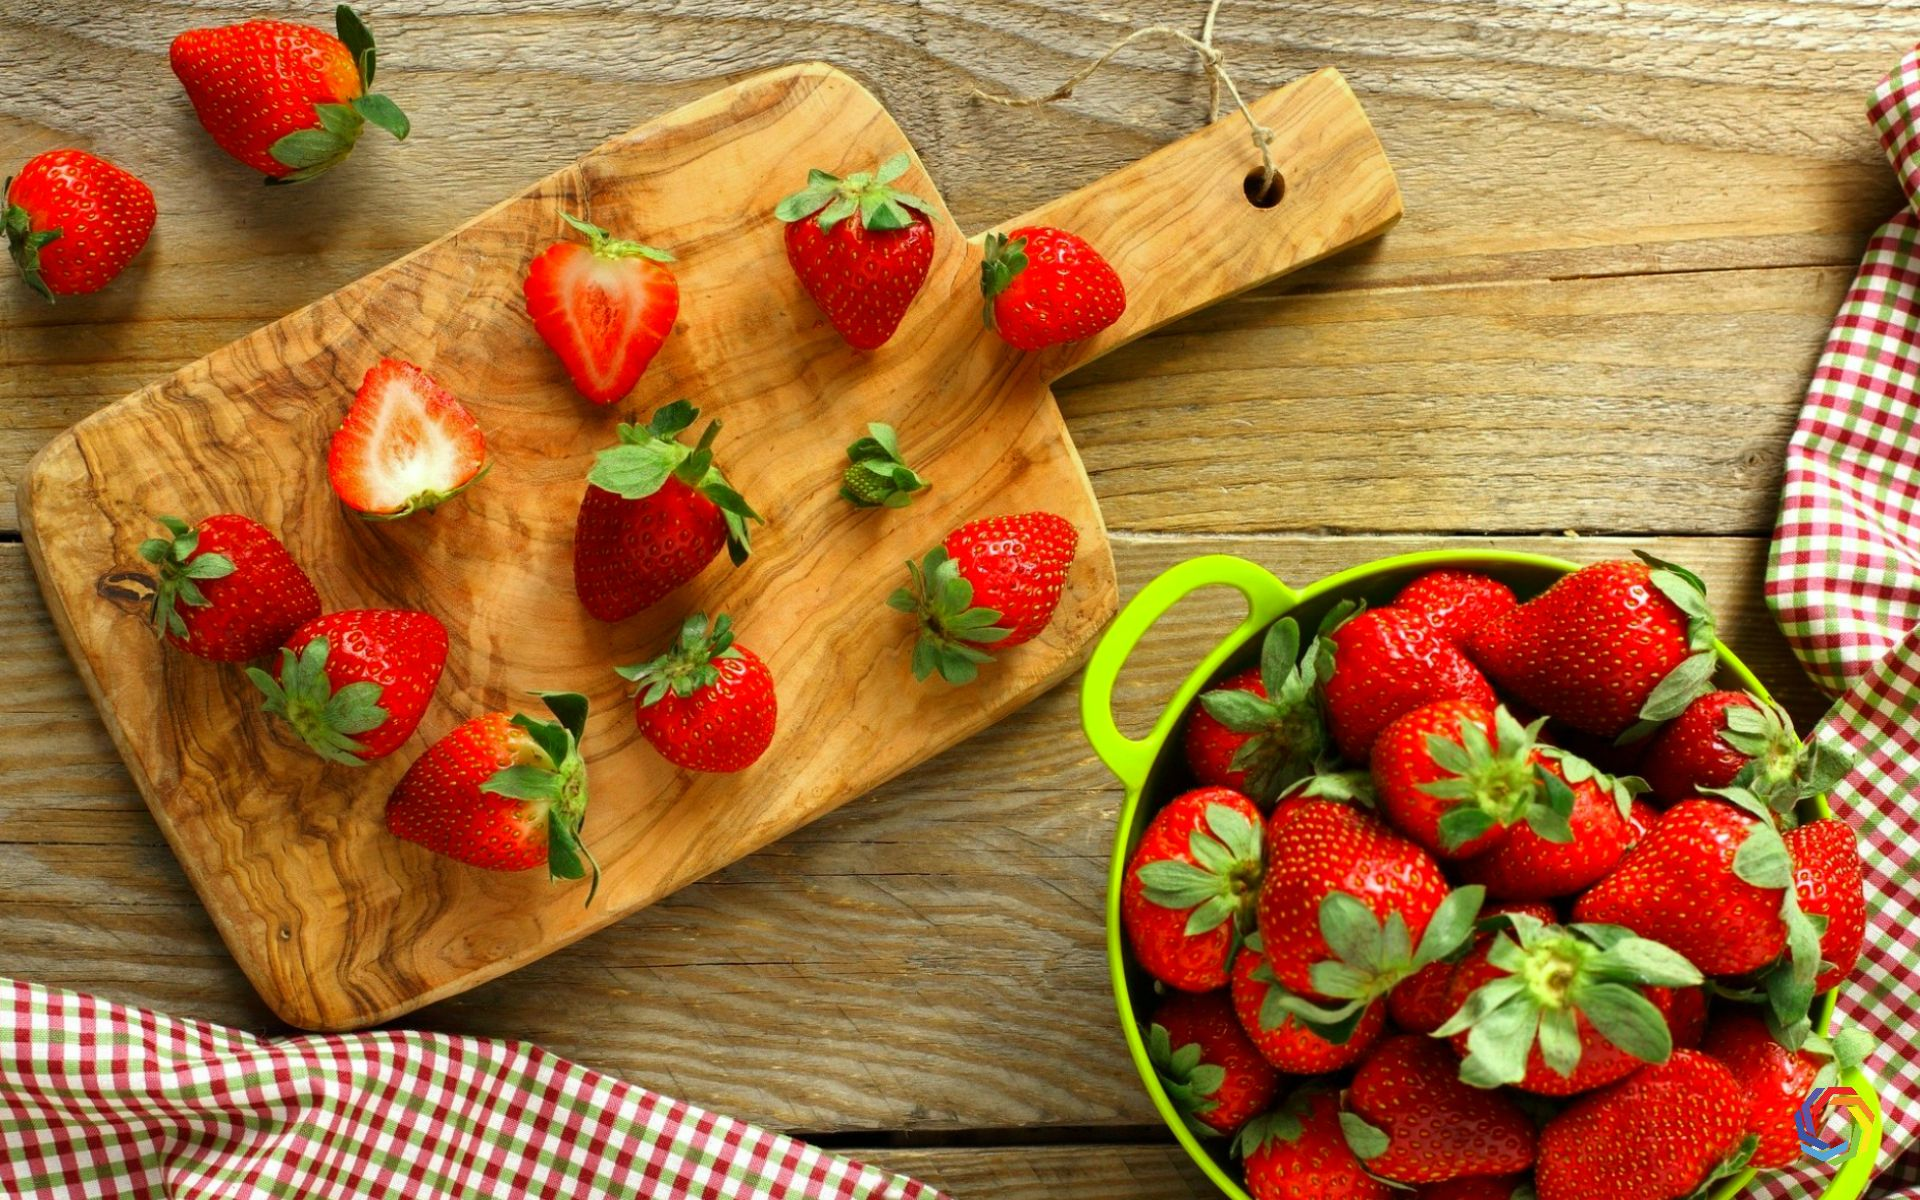 Download Hot Strawberry Food HD Wallpapers 4k HD